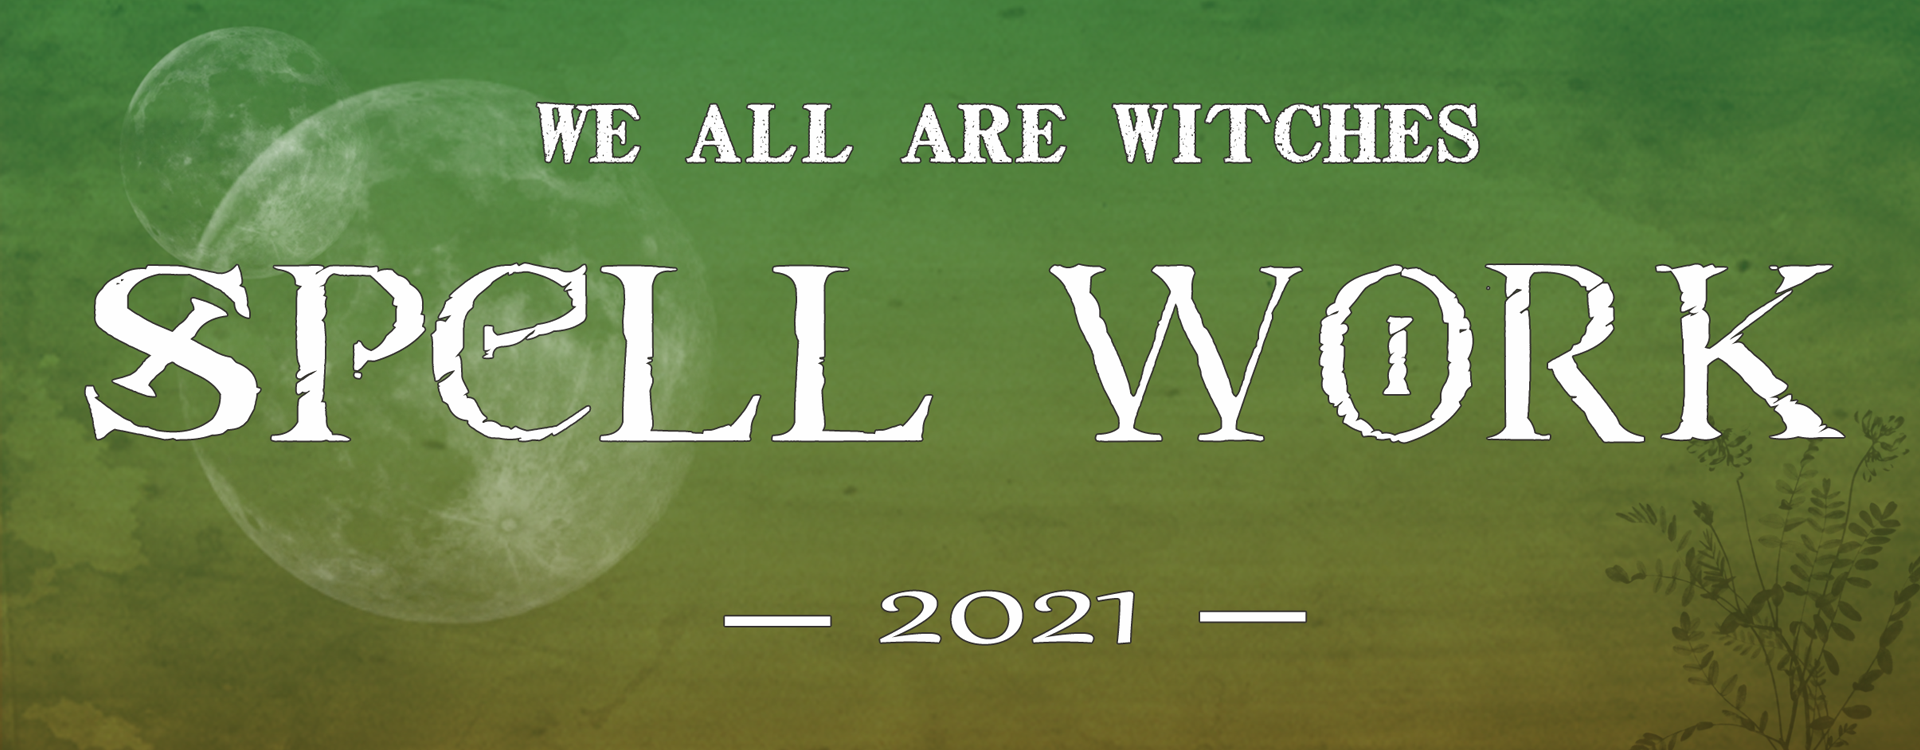 We all Are Witches